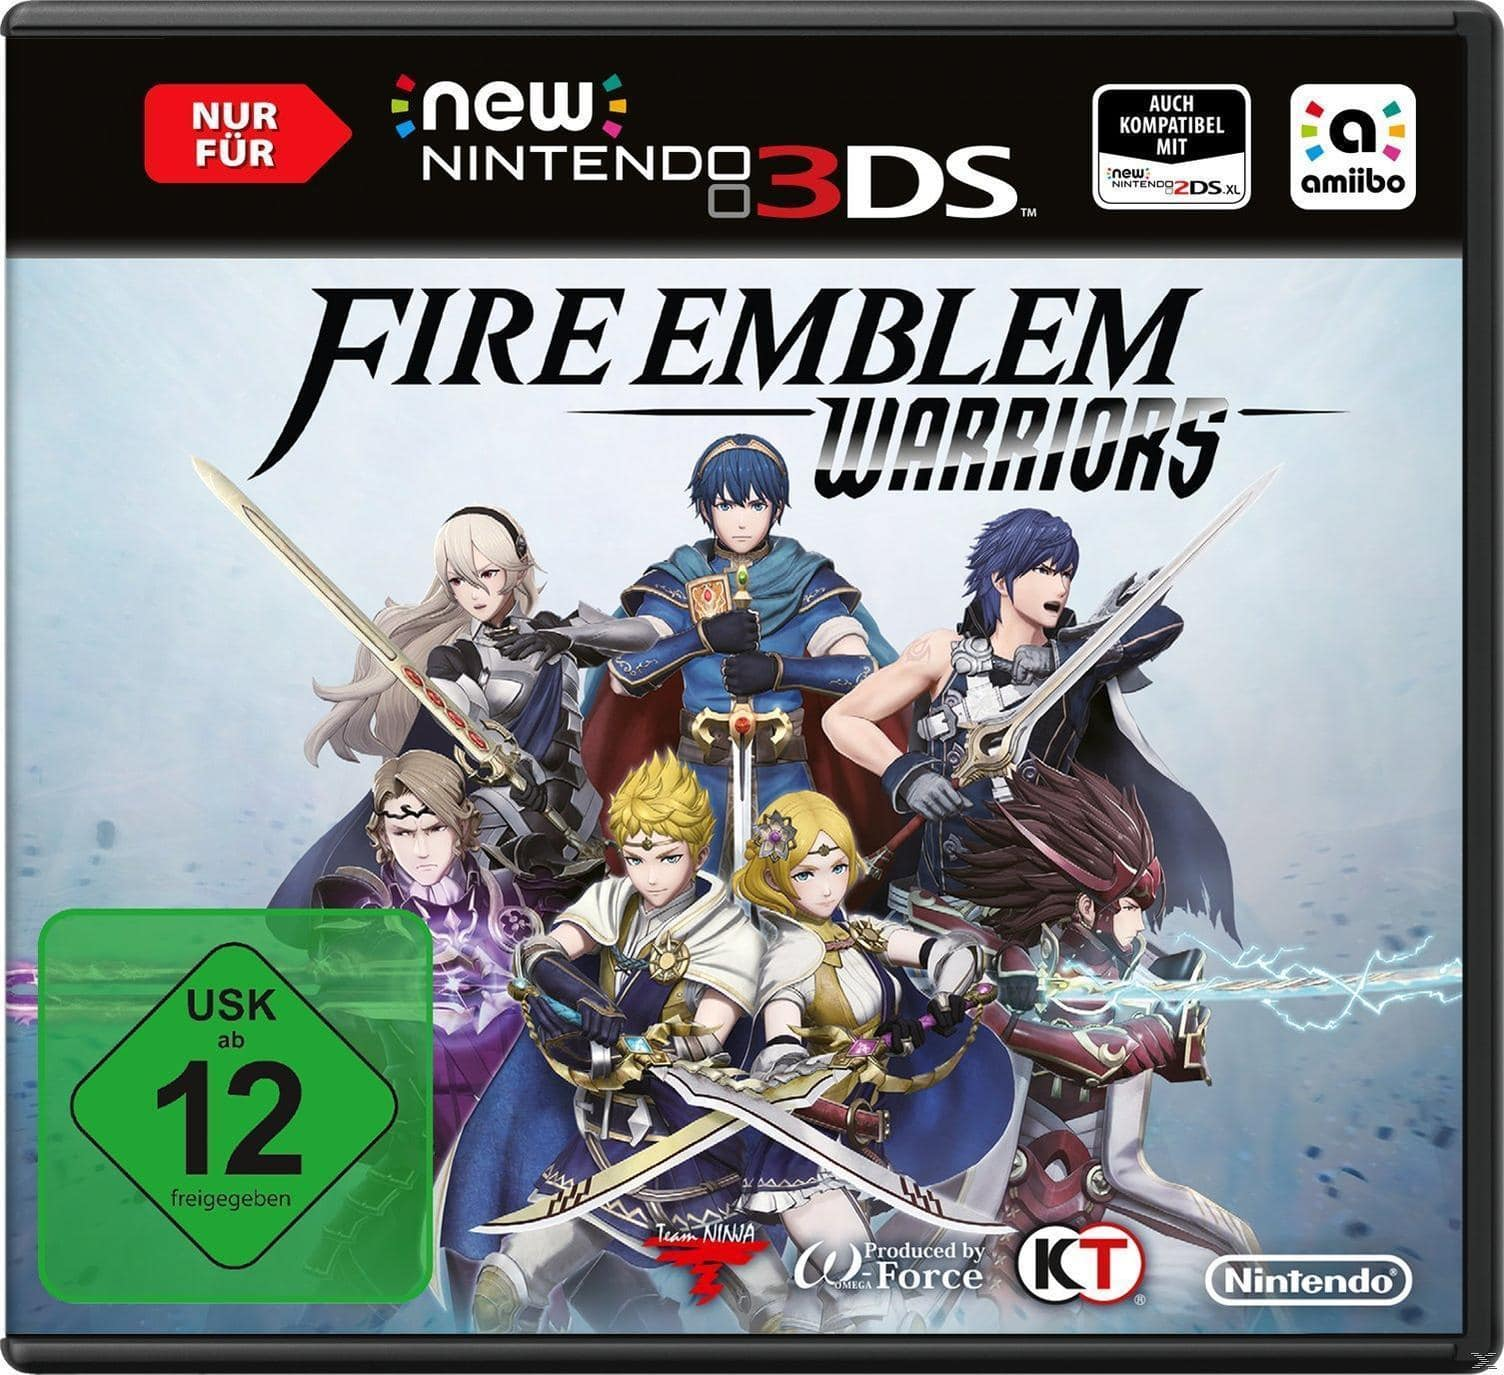 Fire Emblem Warriors (New Nintendo 3DS) für 39,99 Euro